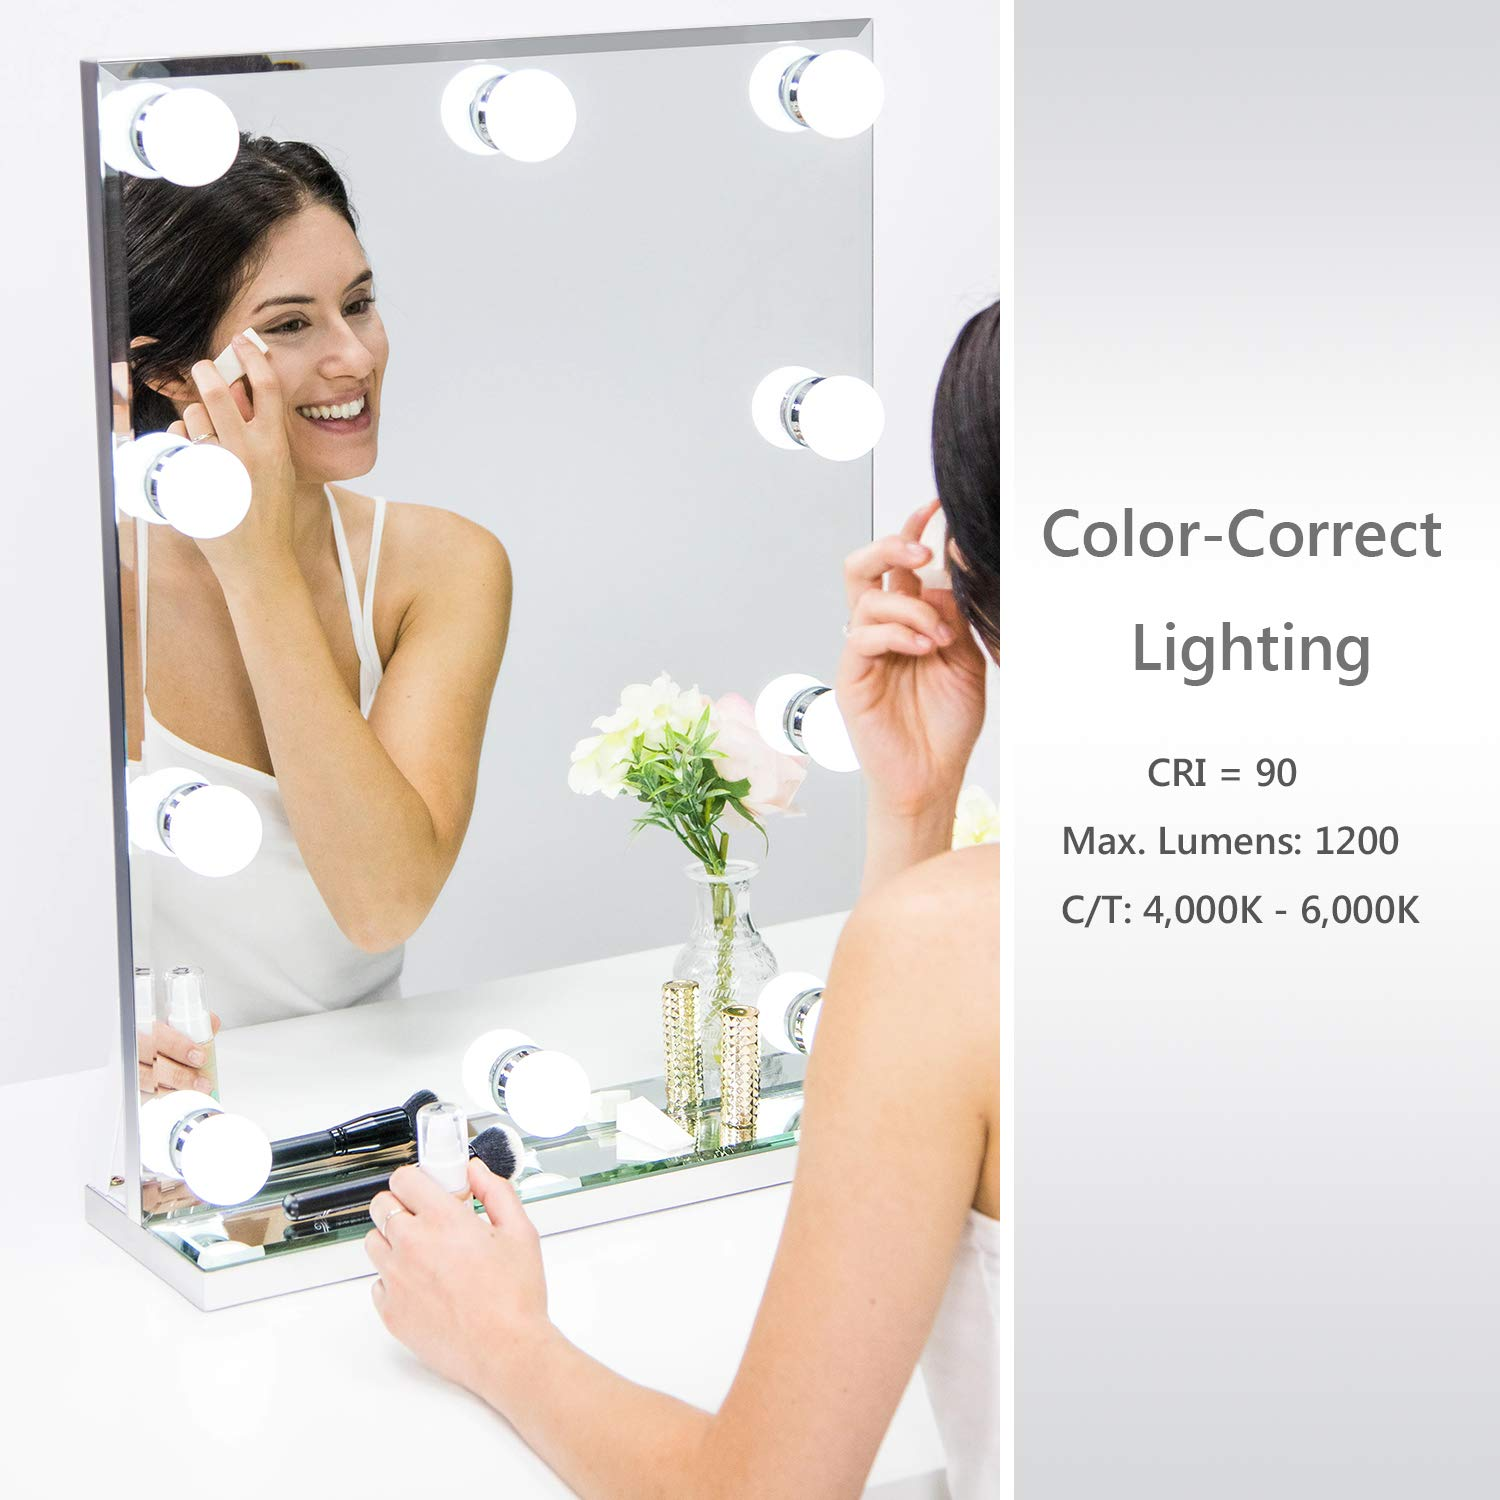 Waneway Hollywood Lighted Vanity Makeup Mirror with Bright LED Lights, Light-up Frameless Dressing Table Cosmetic Mirror with Dimmable Bulbs, Multiple Color Modes (Standard) by Waneway (Image #2)